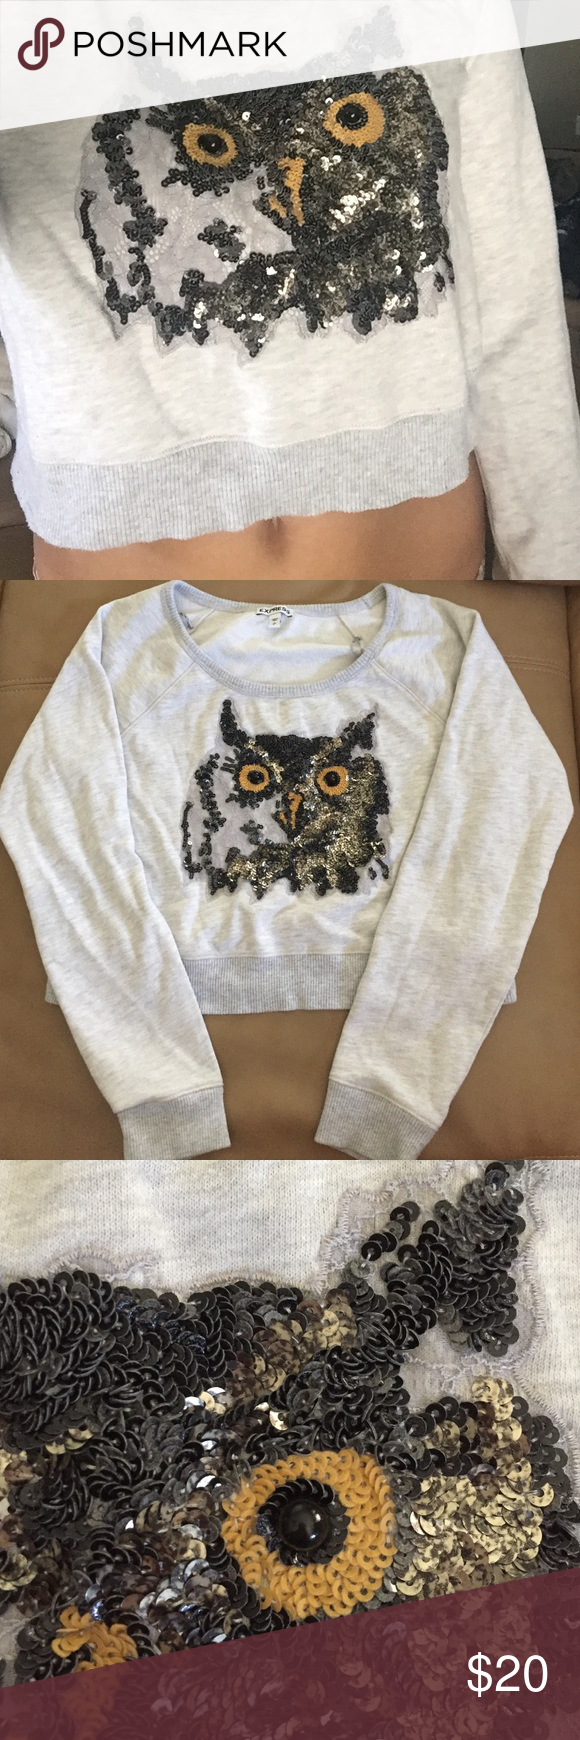 Owl Crop Top Sweatshirt Sequin and lace owl, crop top sweatshirt. 60% Cotton 40% Polyester. Size small but comfortable fit, great condition all sequins and beads still in place. Express Tops Sweatshirts & Hoodies